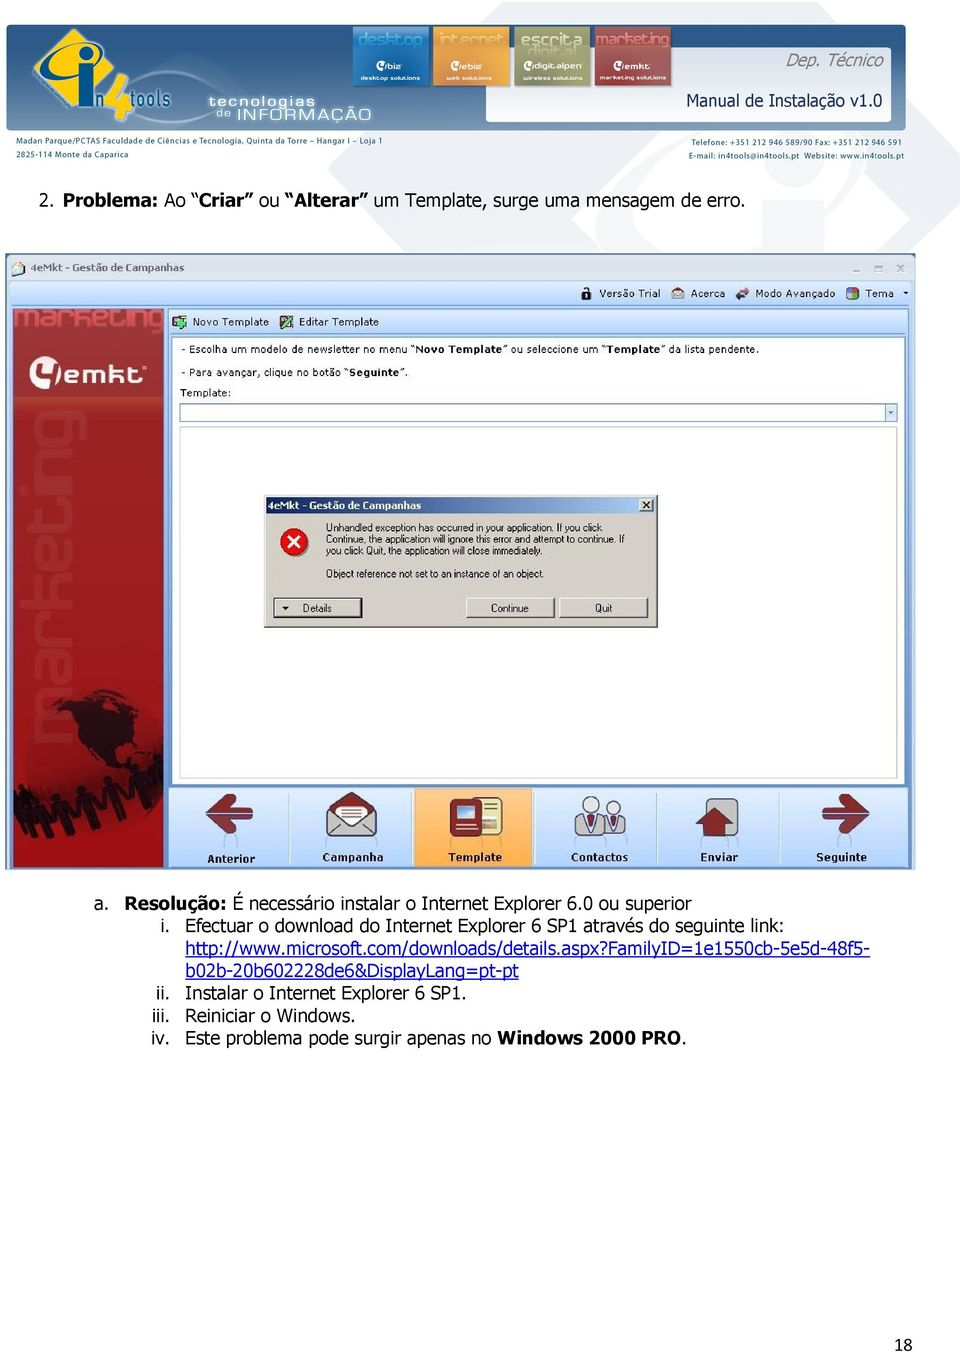 Efectuar o download do Internet Explorer 6 SP1 através do seguinte link: http://www.microsoft.com/downloads/details.